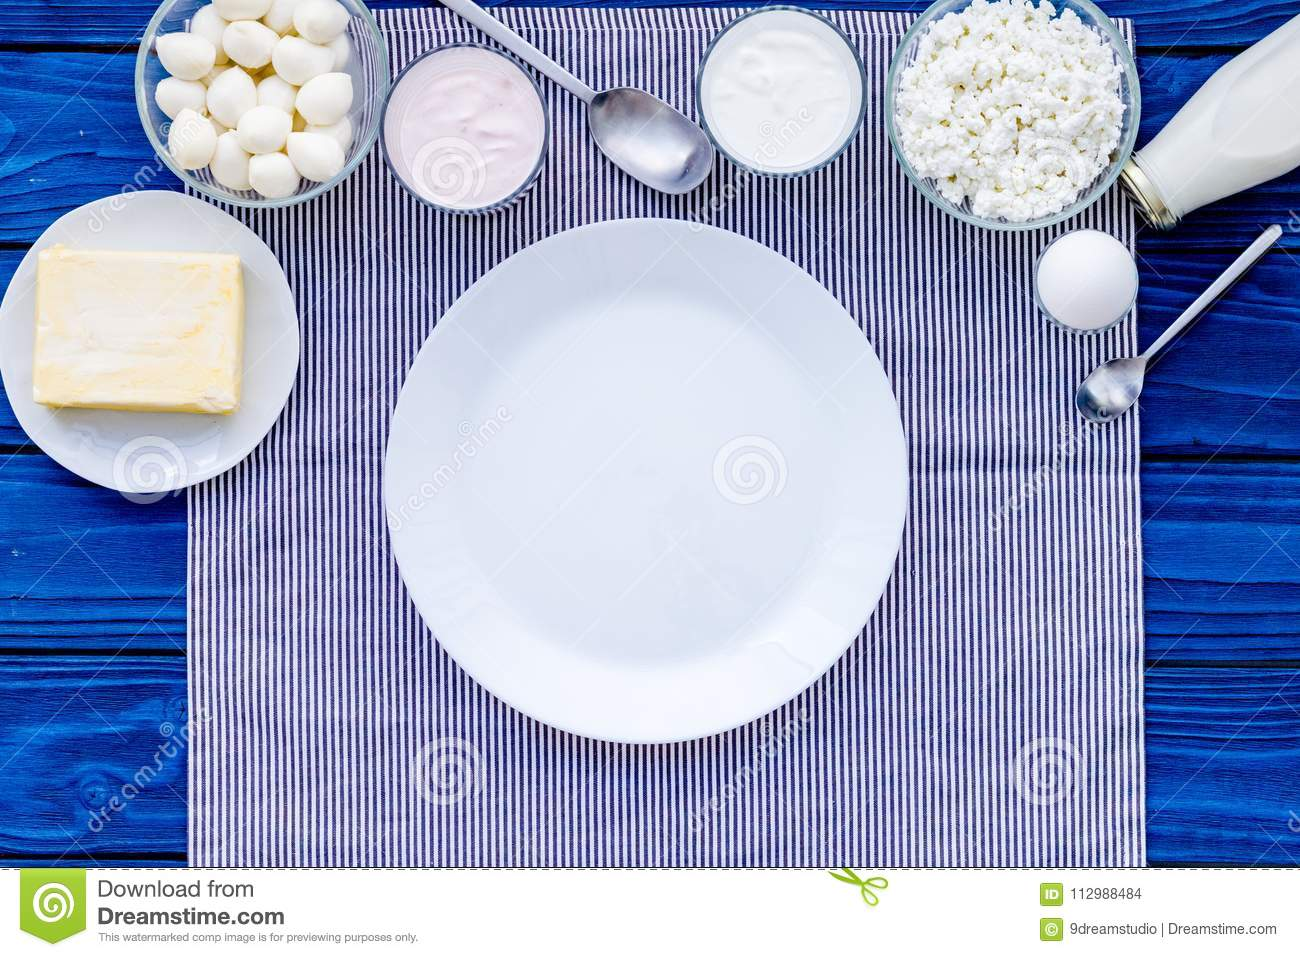 Natural farm products. Milk, cottage, eggs, cheese, yougurt on blue background top view copy space